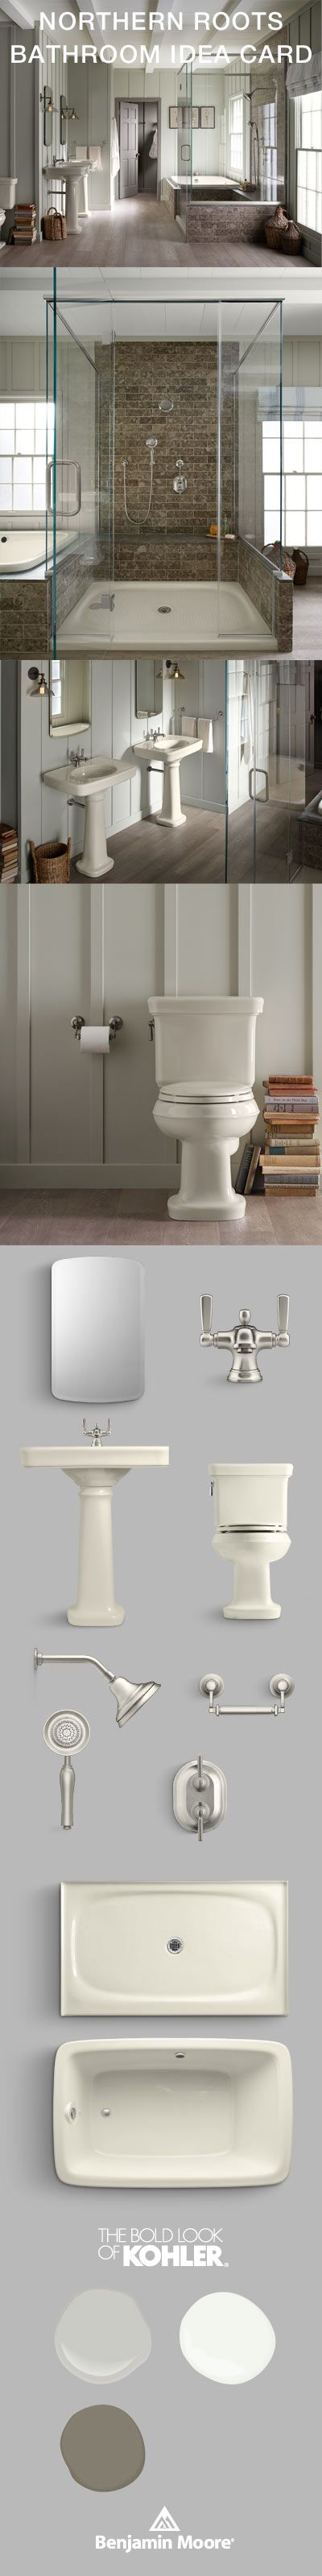 Farmhouse pastel bathroom with classic biscuit toilet and sink #CollaborationinFullColor